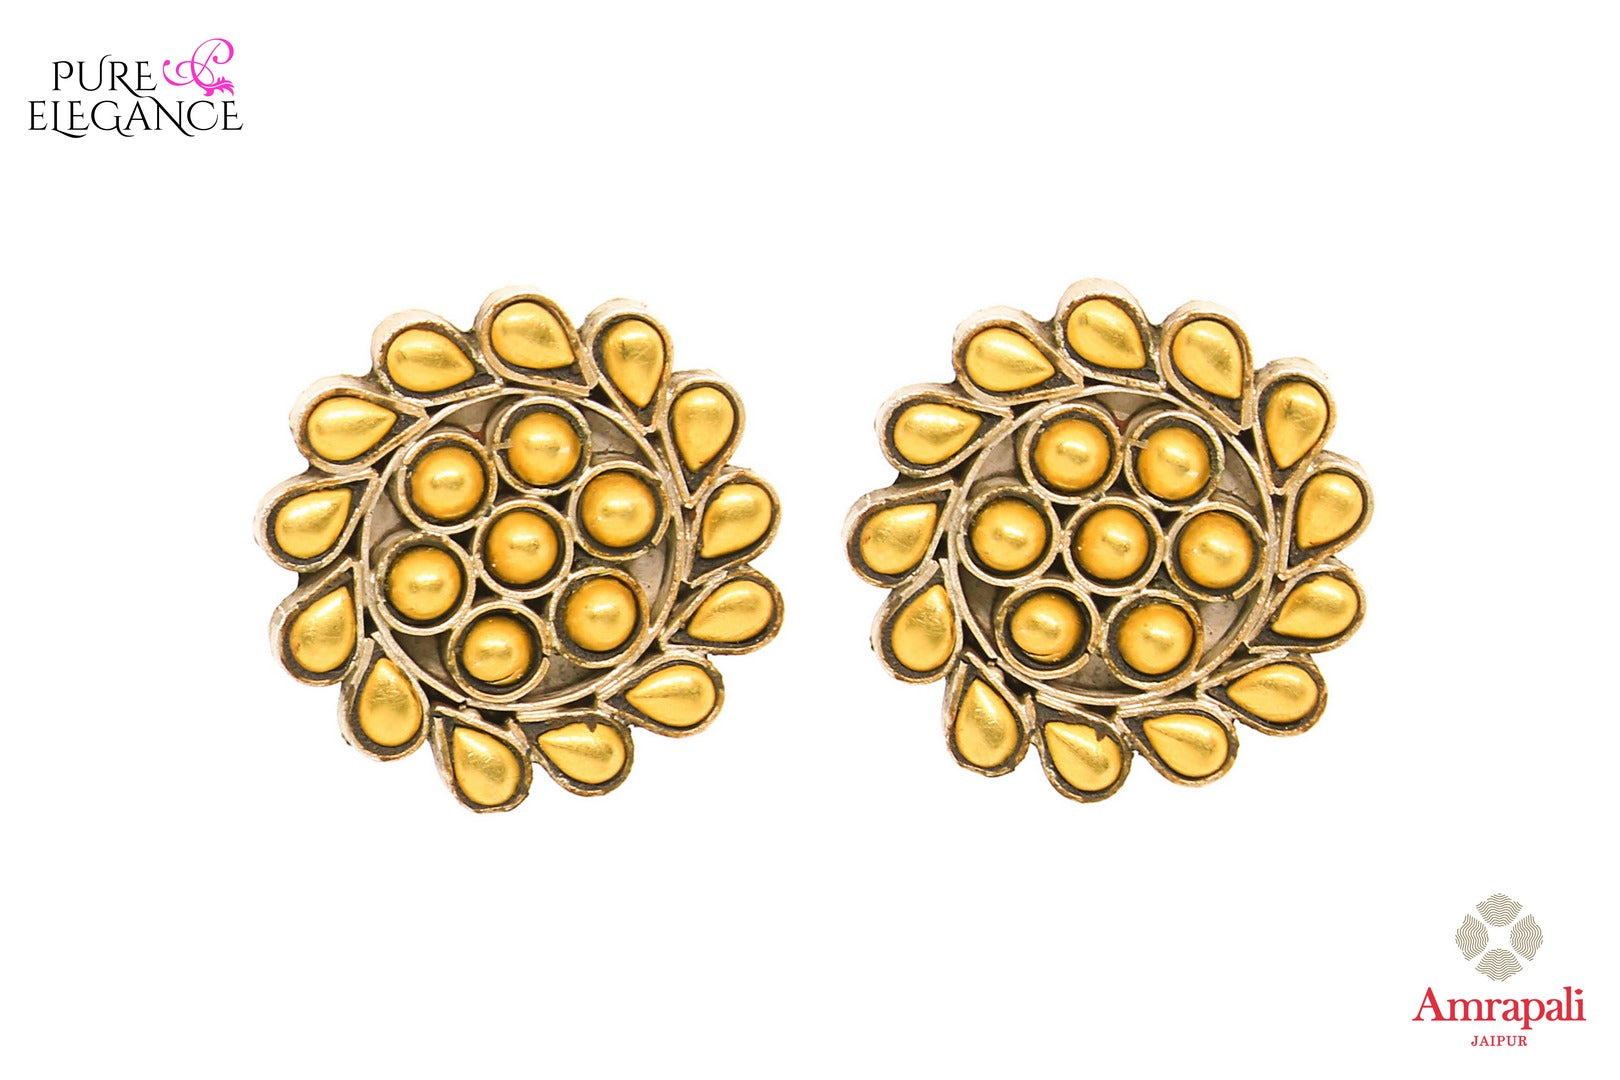 Silver gold plated flower design stud earrings buy online in USA from Amrapali. If you are looking for Indian silver gold plated earrings in USA, then Pure Elegance Indian fashion store is the place for you. A whole range of exquisite of ethnic Indian jewelry is waiting for you on our shelves, you can also opt to shop online.-front view